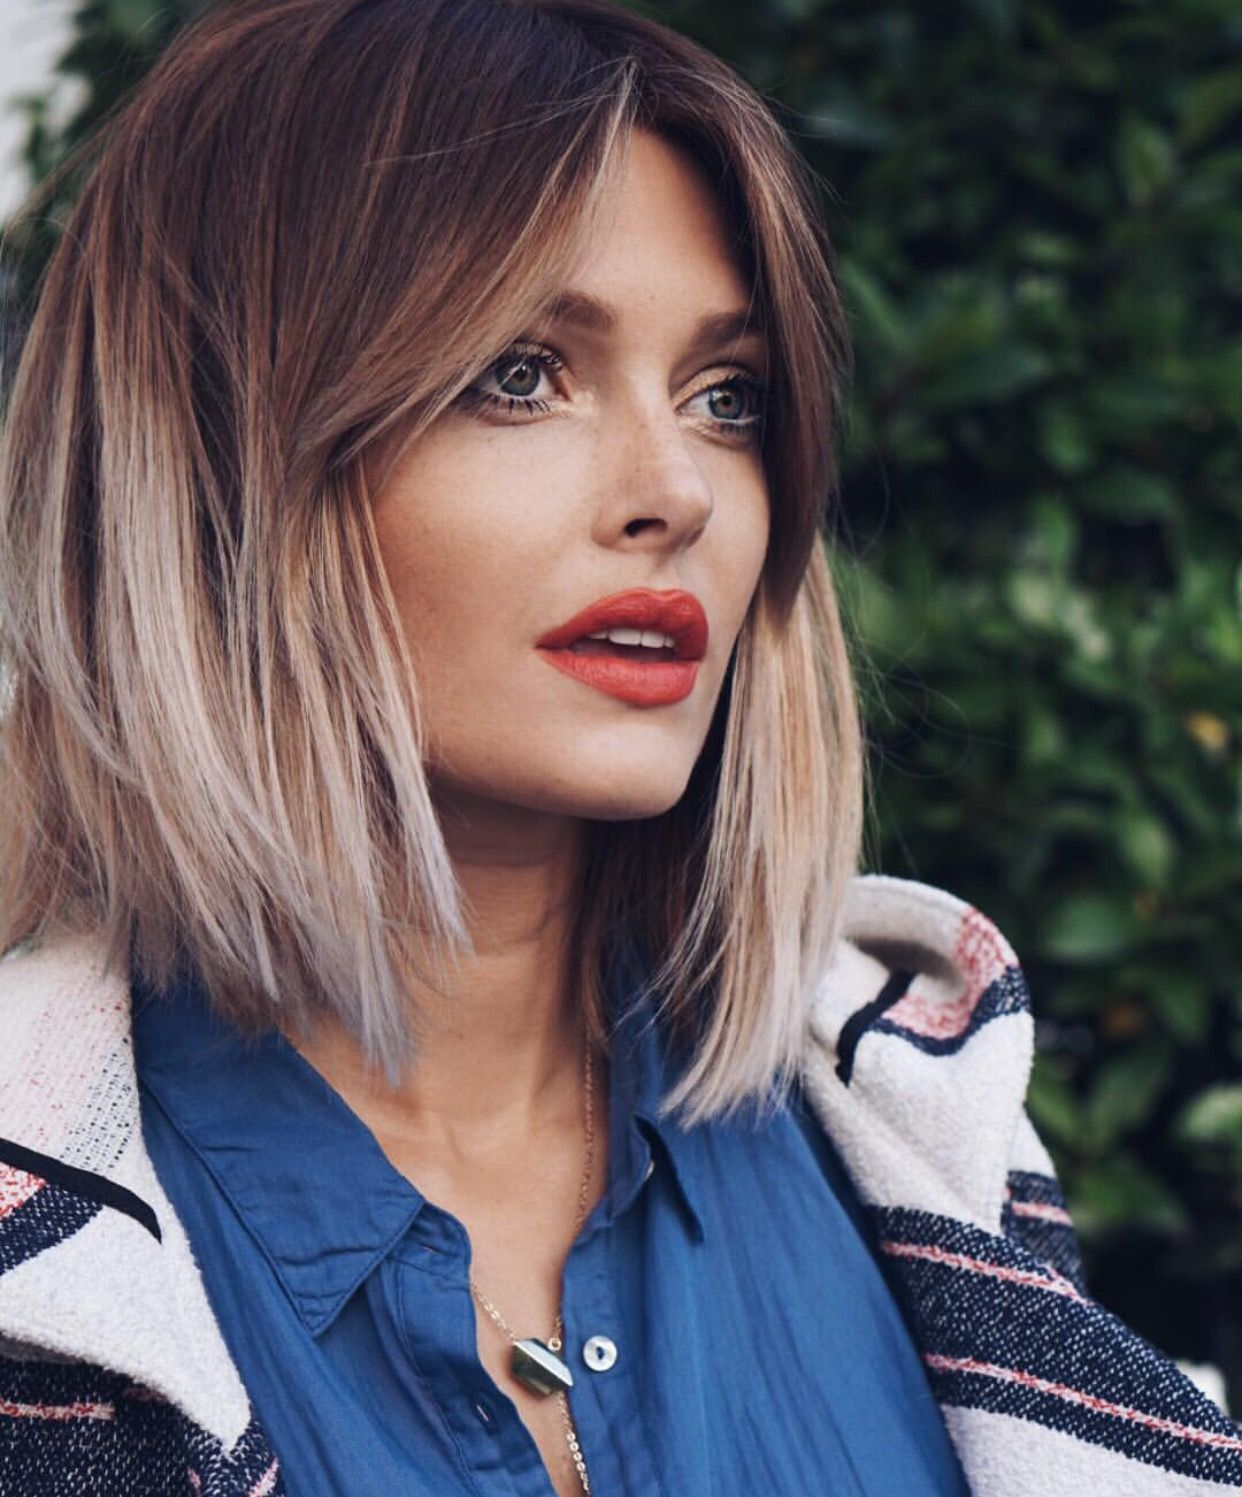 two-toned hair | hair | pinterest | hair coloring, hair style and